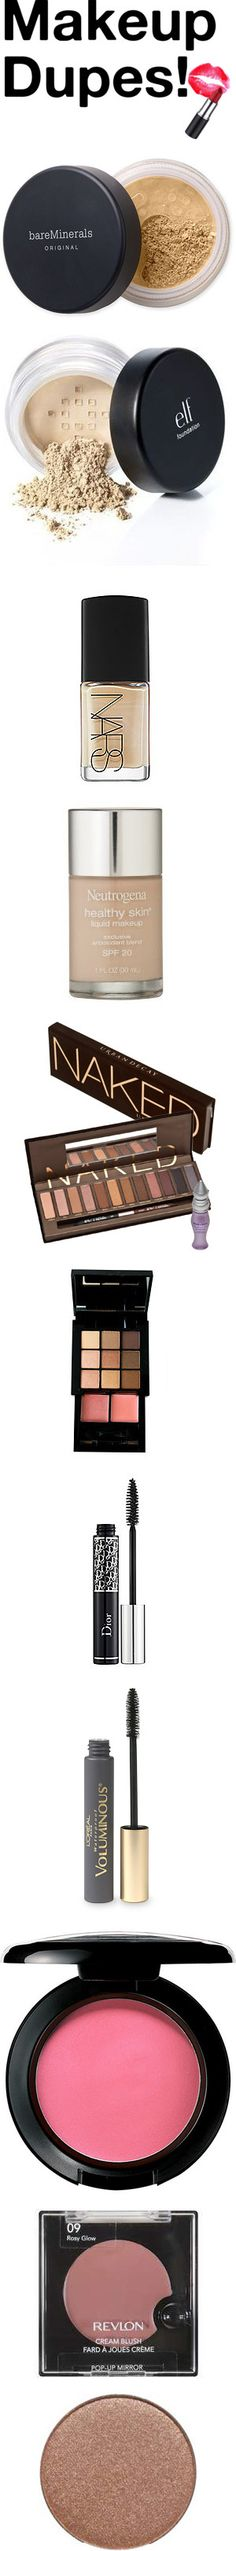 """Makeup Dupes"" by lauren-claire on Polyvore"